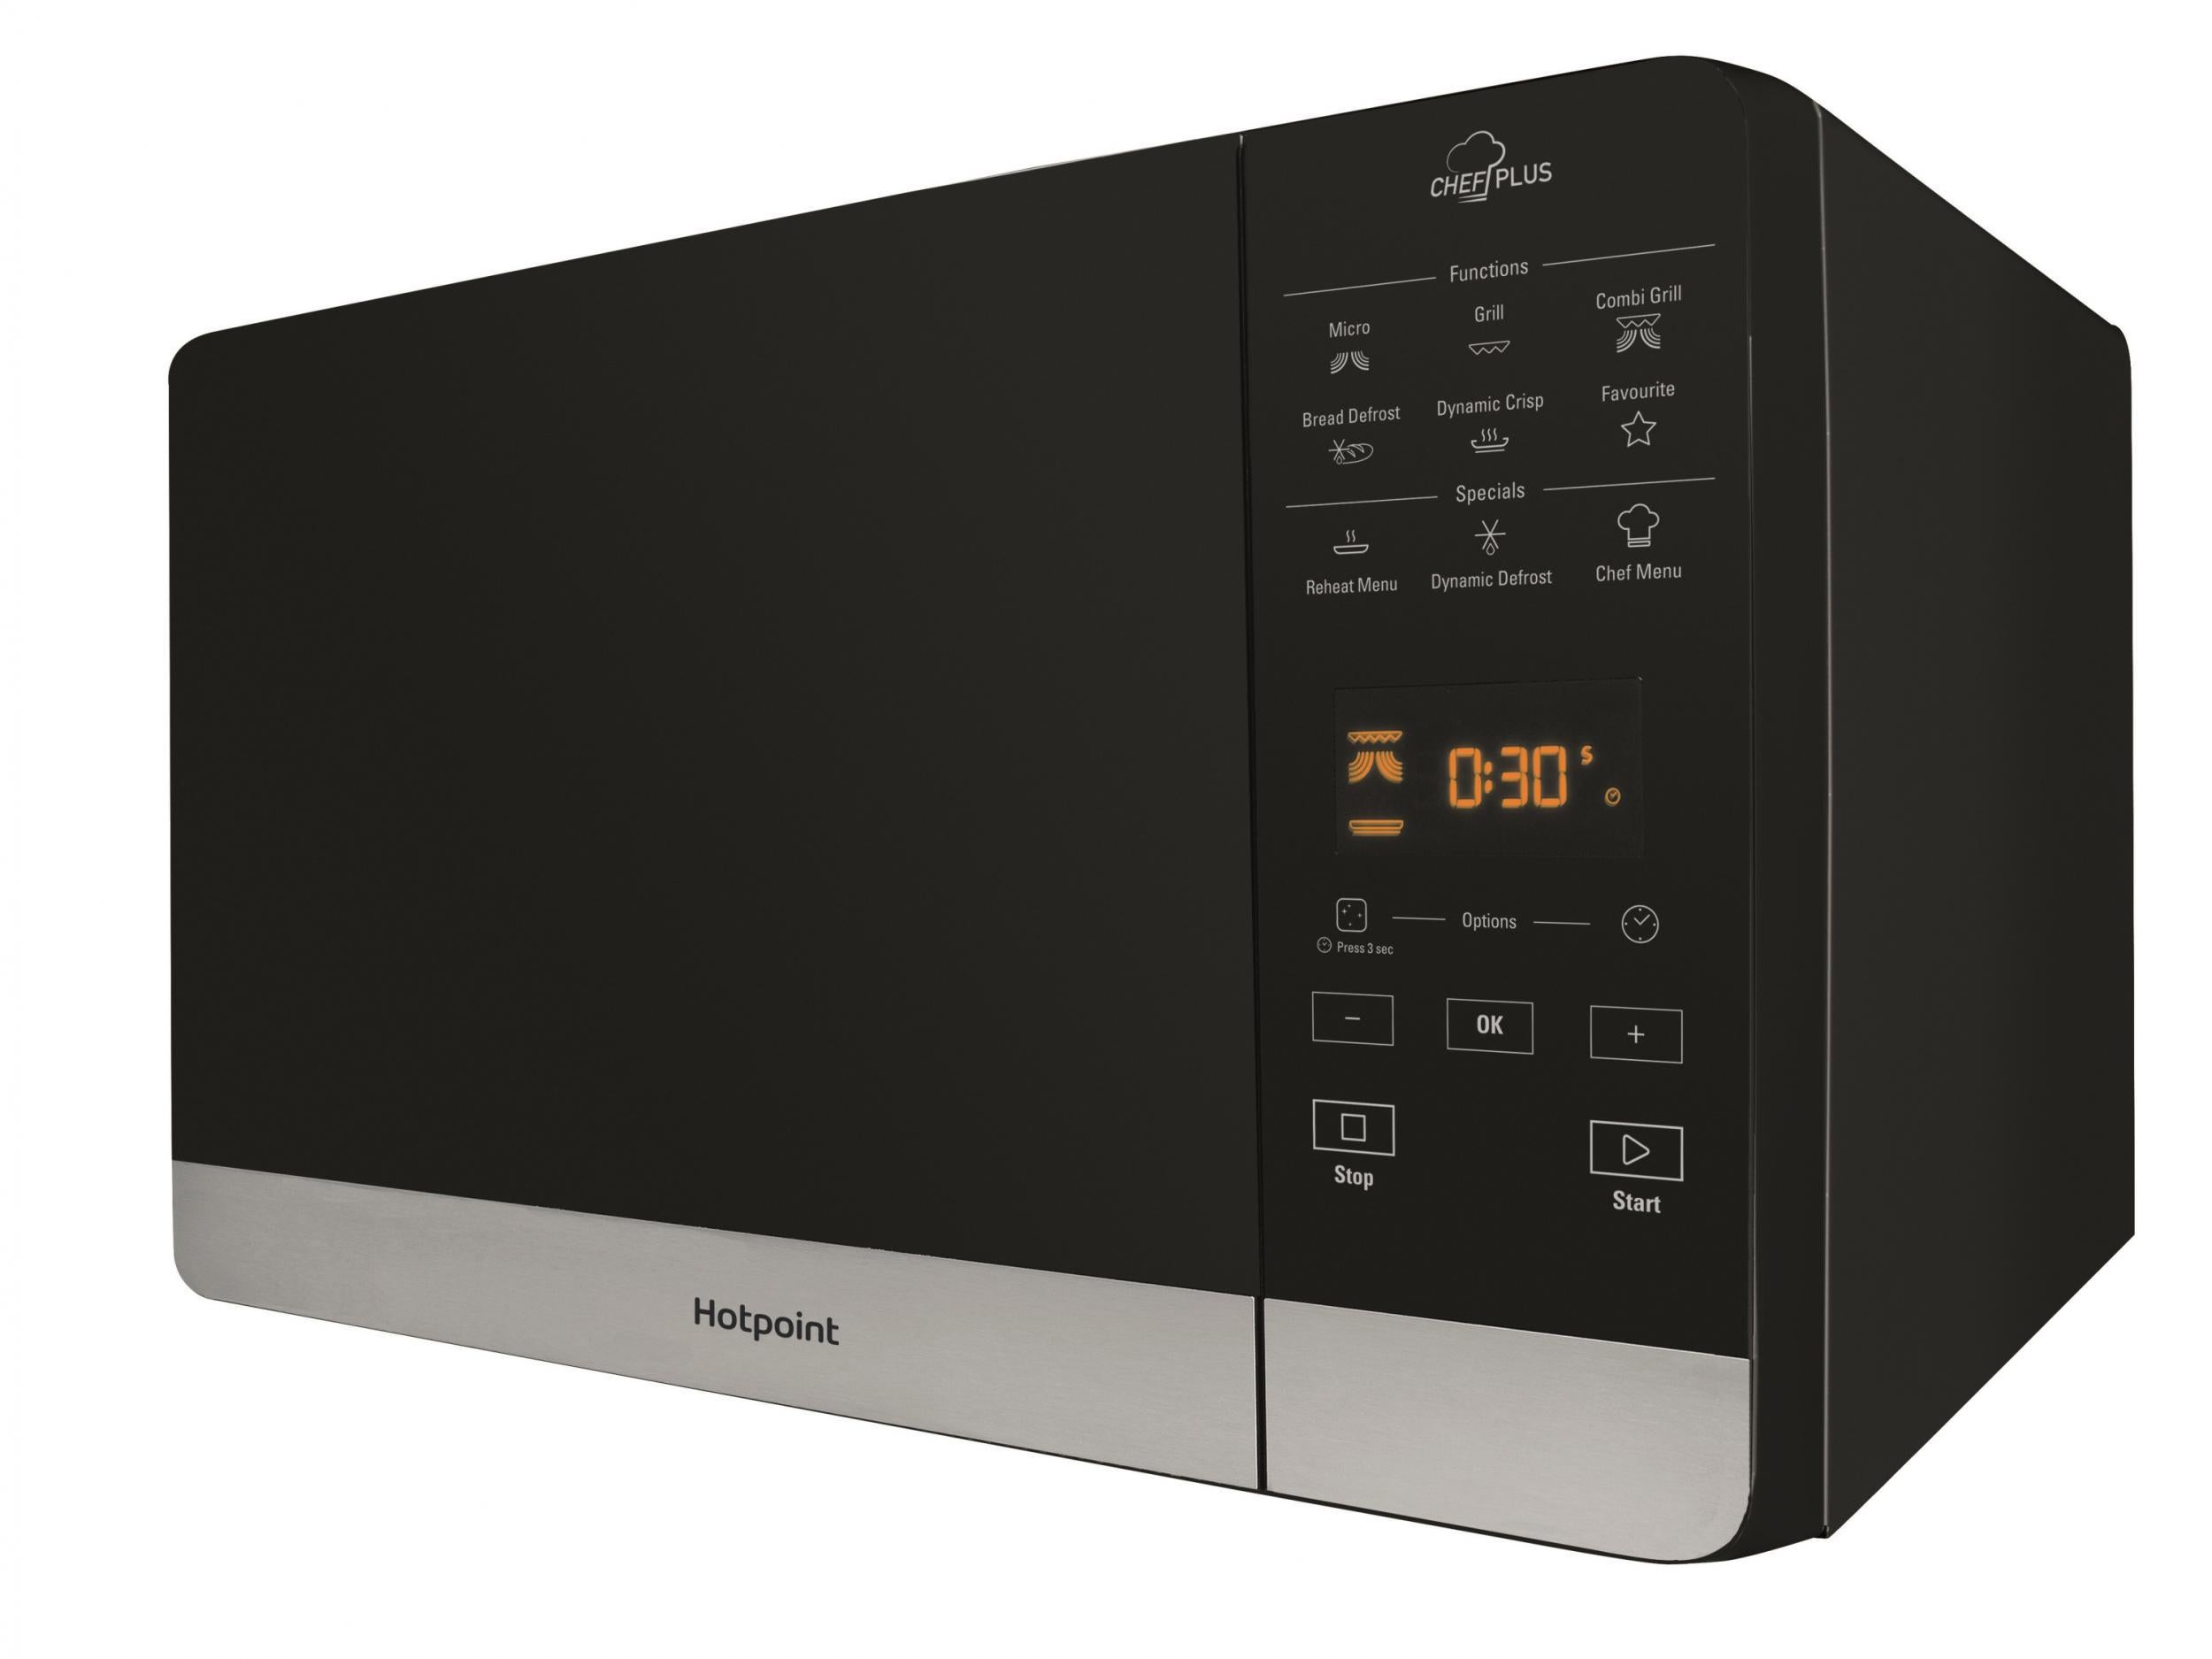 Best microwave: From heating up food to grilling pizzas and oven